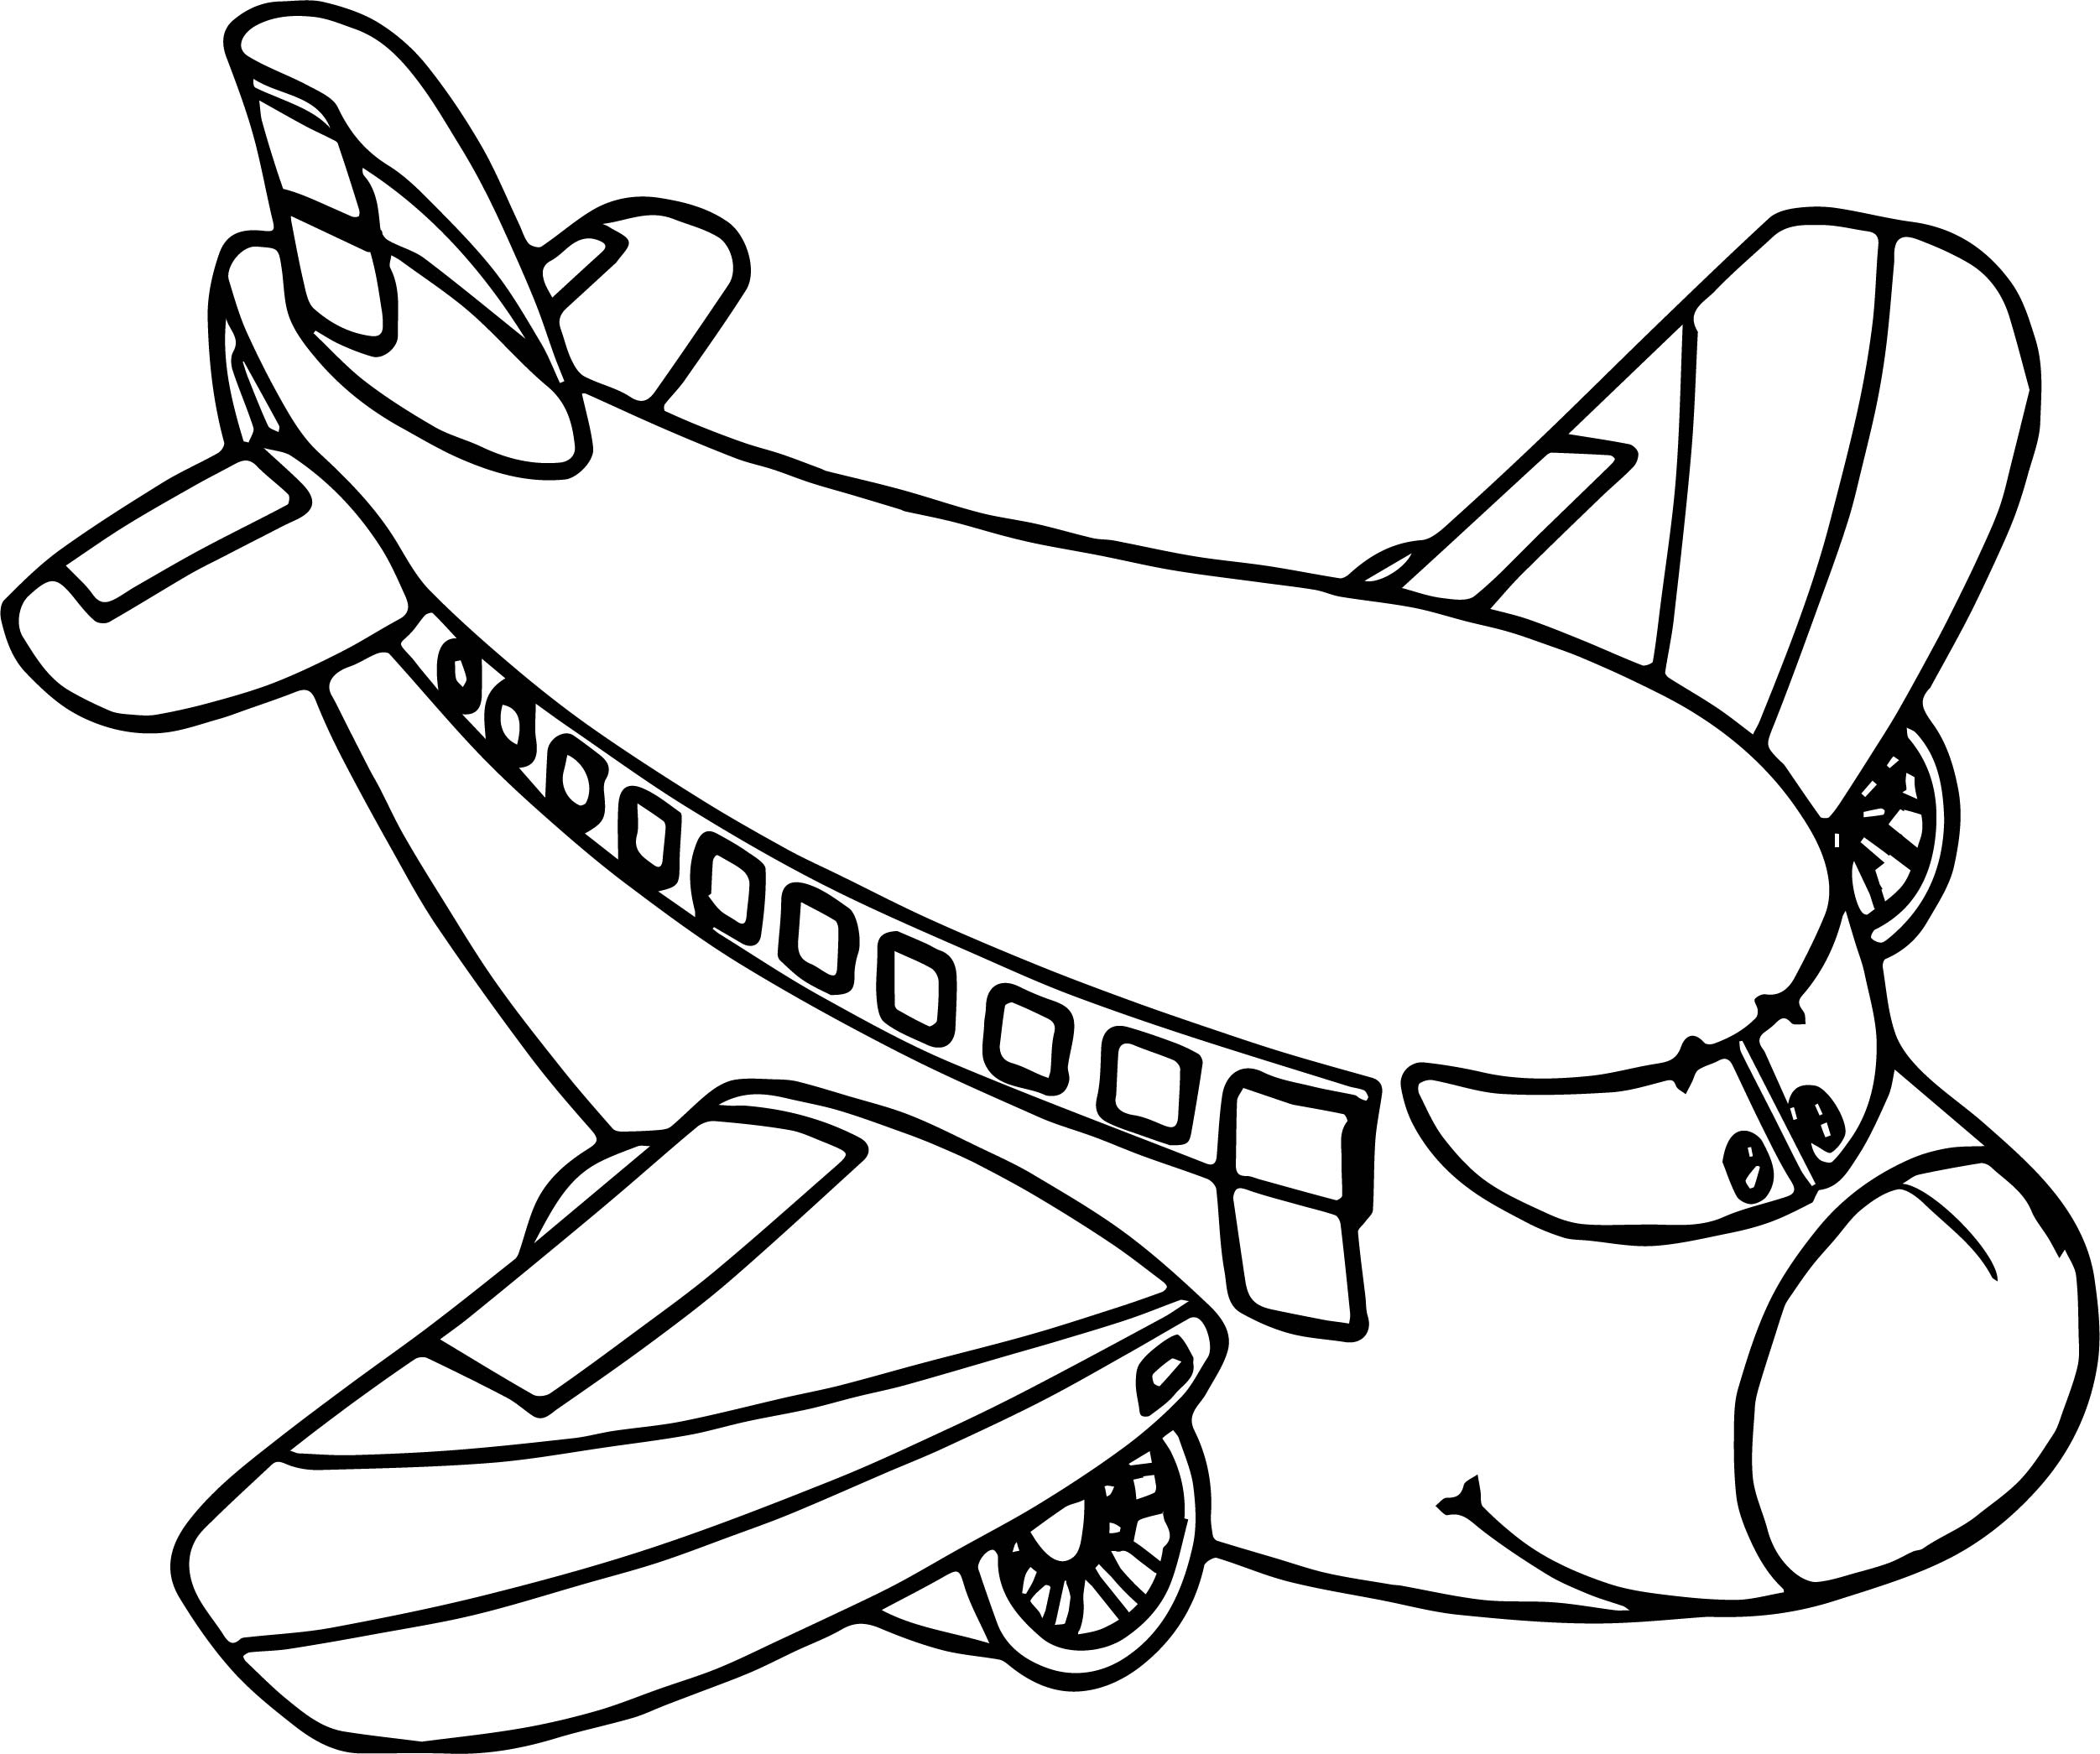 air plane coloring pages coloring pages for kids airplane coloring pages pages air coloring plane